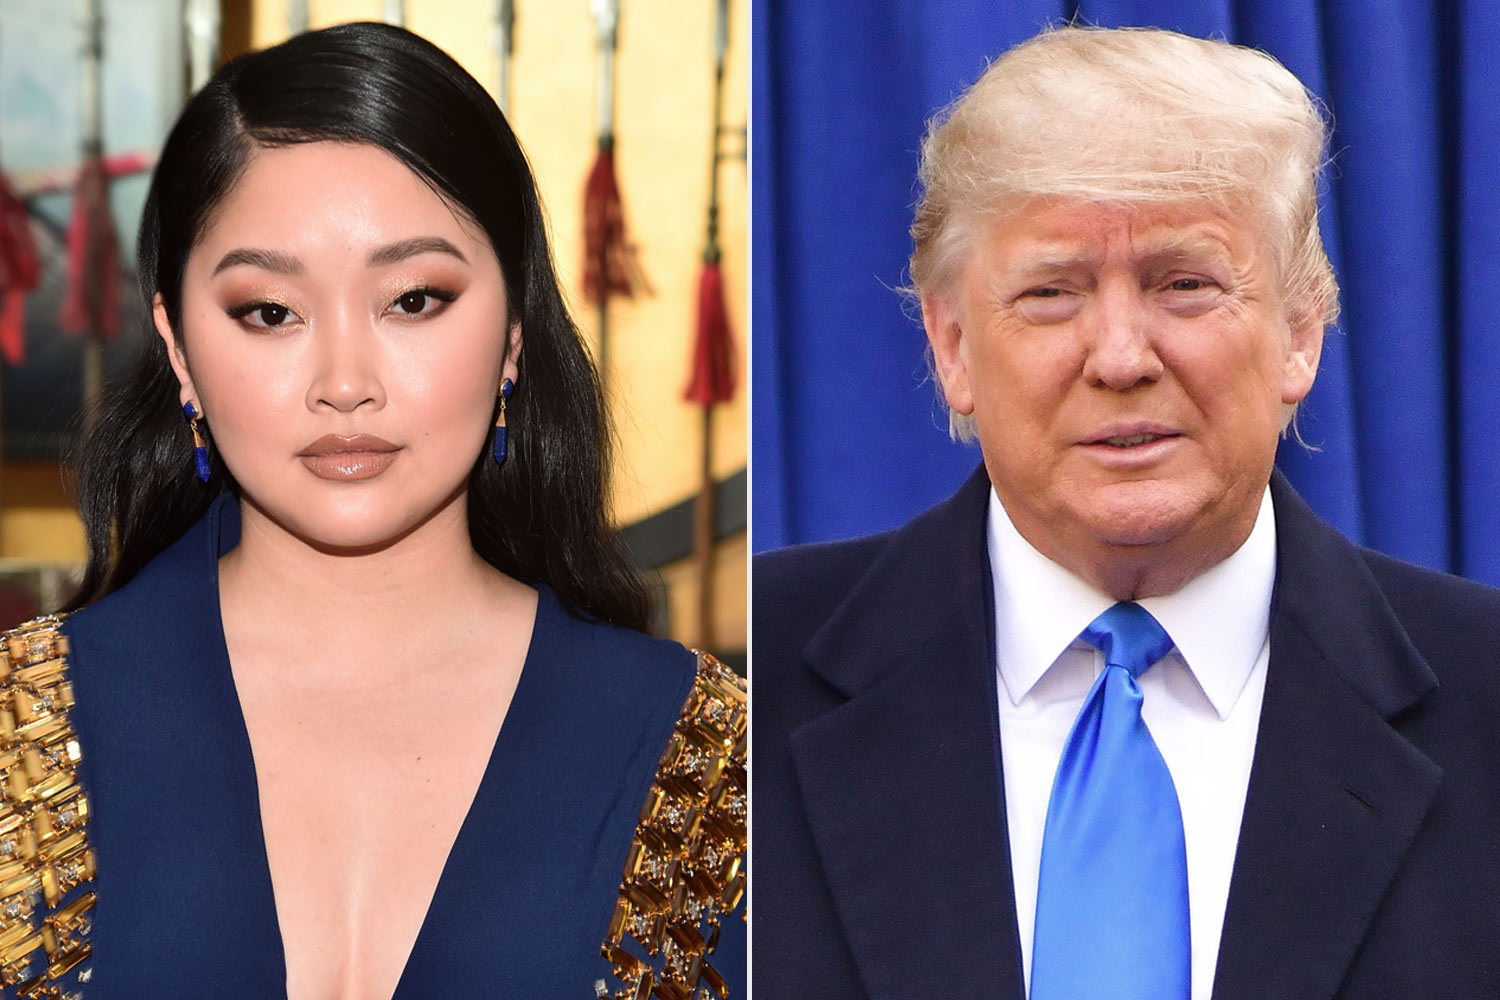 Lana Condor and Trump